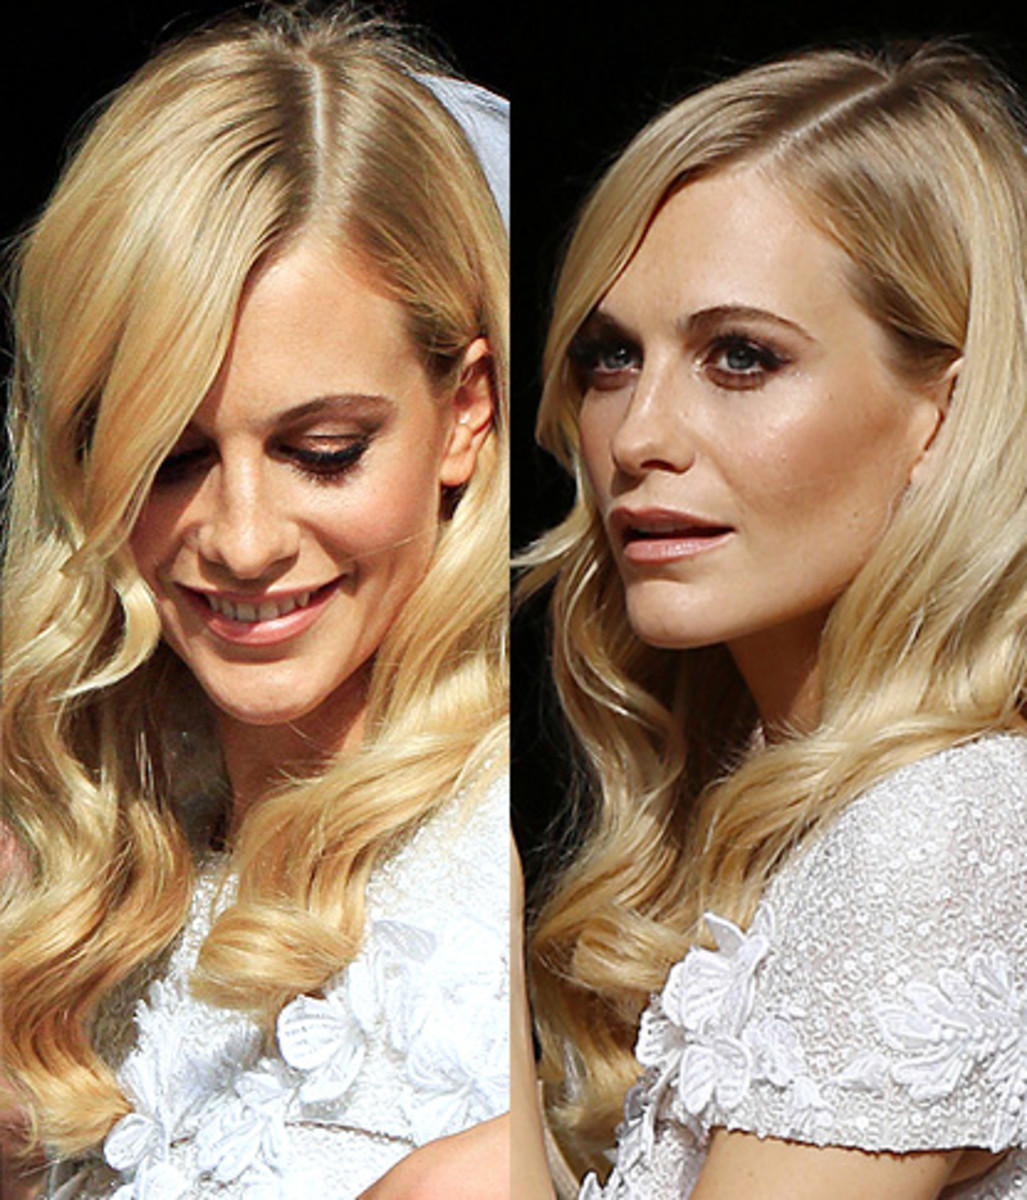 Poppy Delevingne wedding makeup by Charlotte Tilbury, inspiration for the CT Beauty Glow Palette.